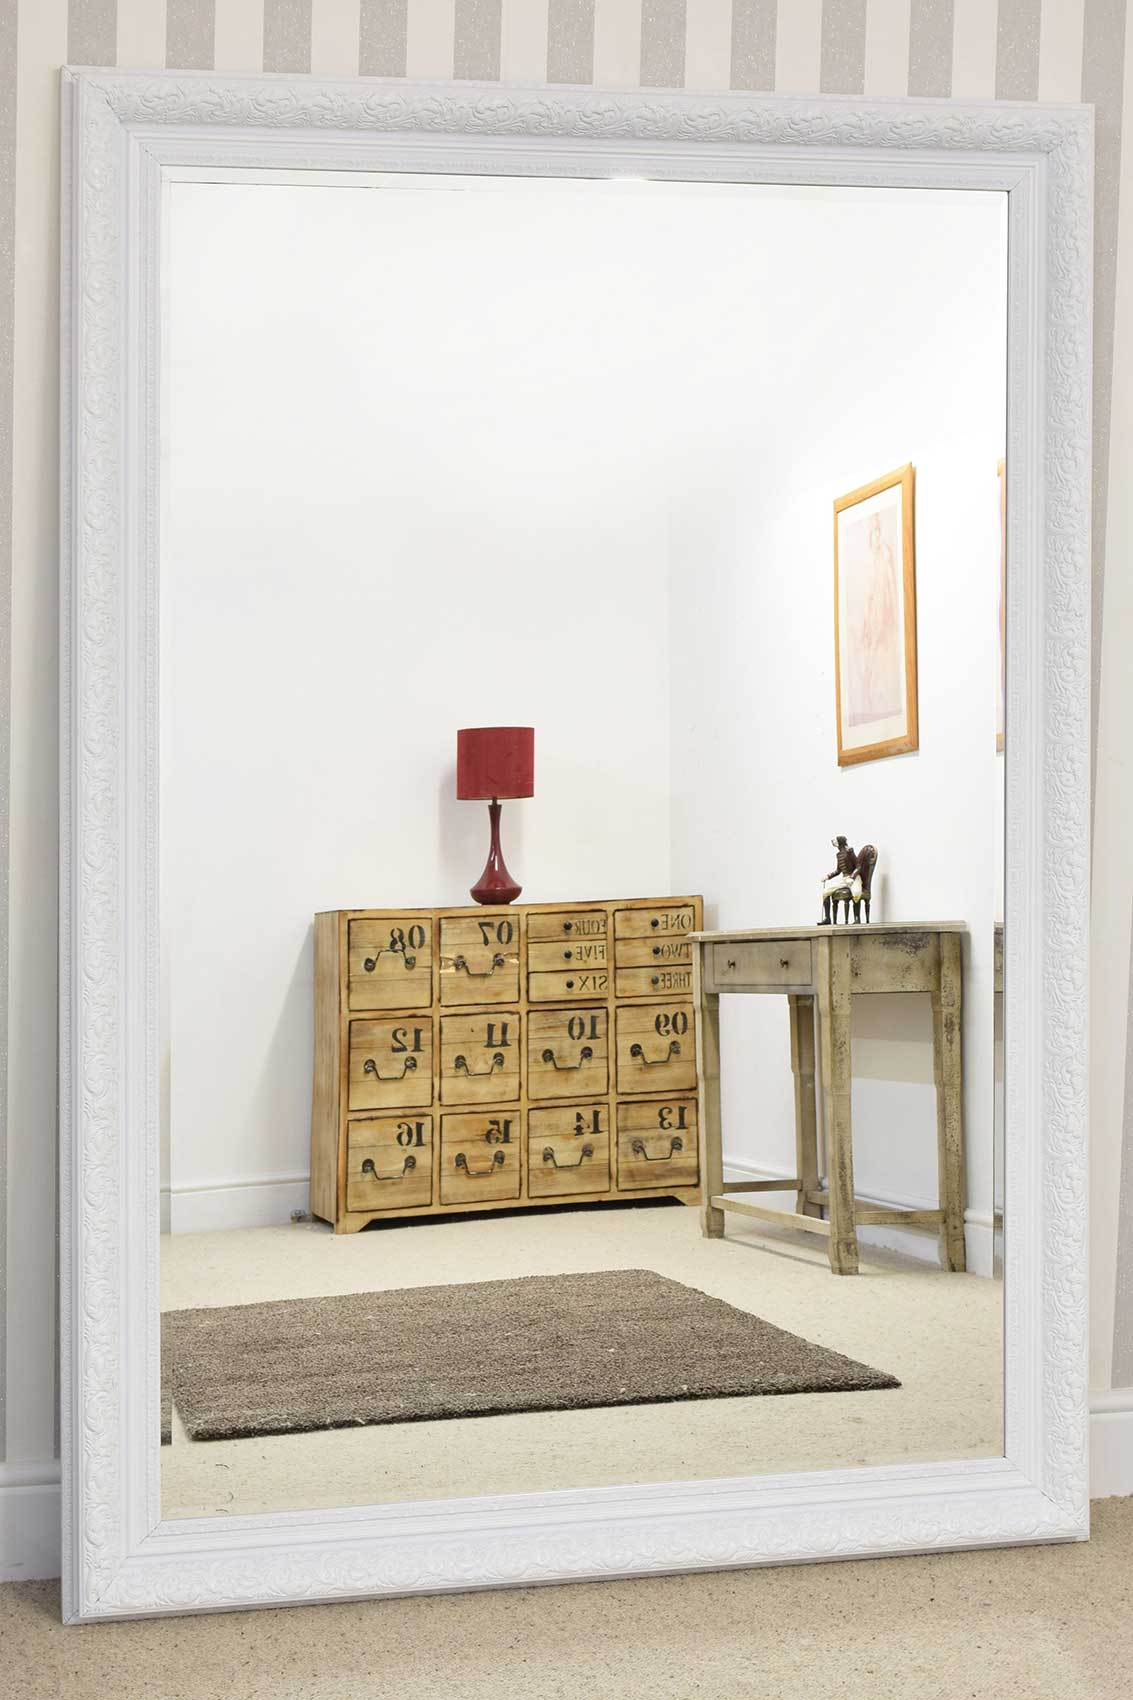 large white antique style bellved wall mirror handmade 6ft10 x 4ft10 208 x 147cm ebay. Black Bedroom Furniture Sets. Home Design Ideas